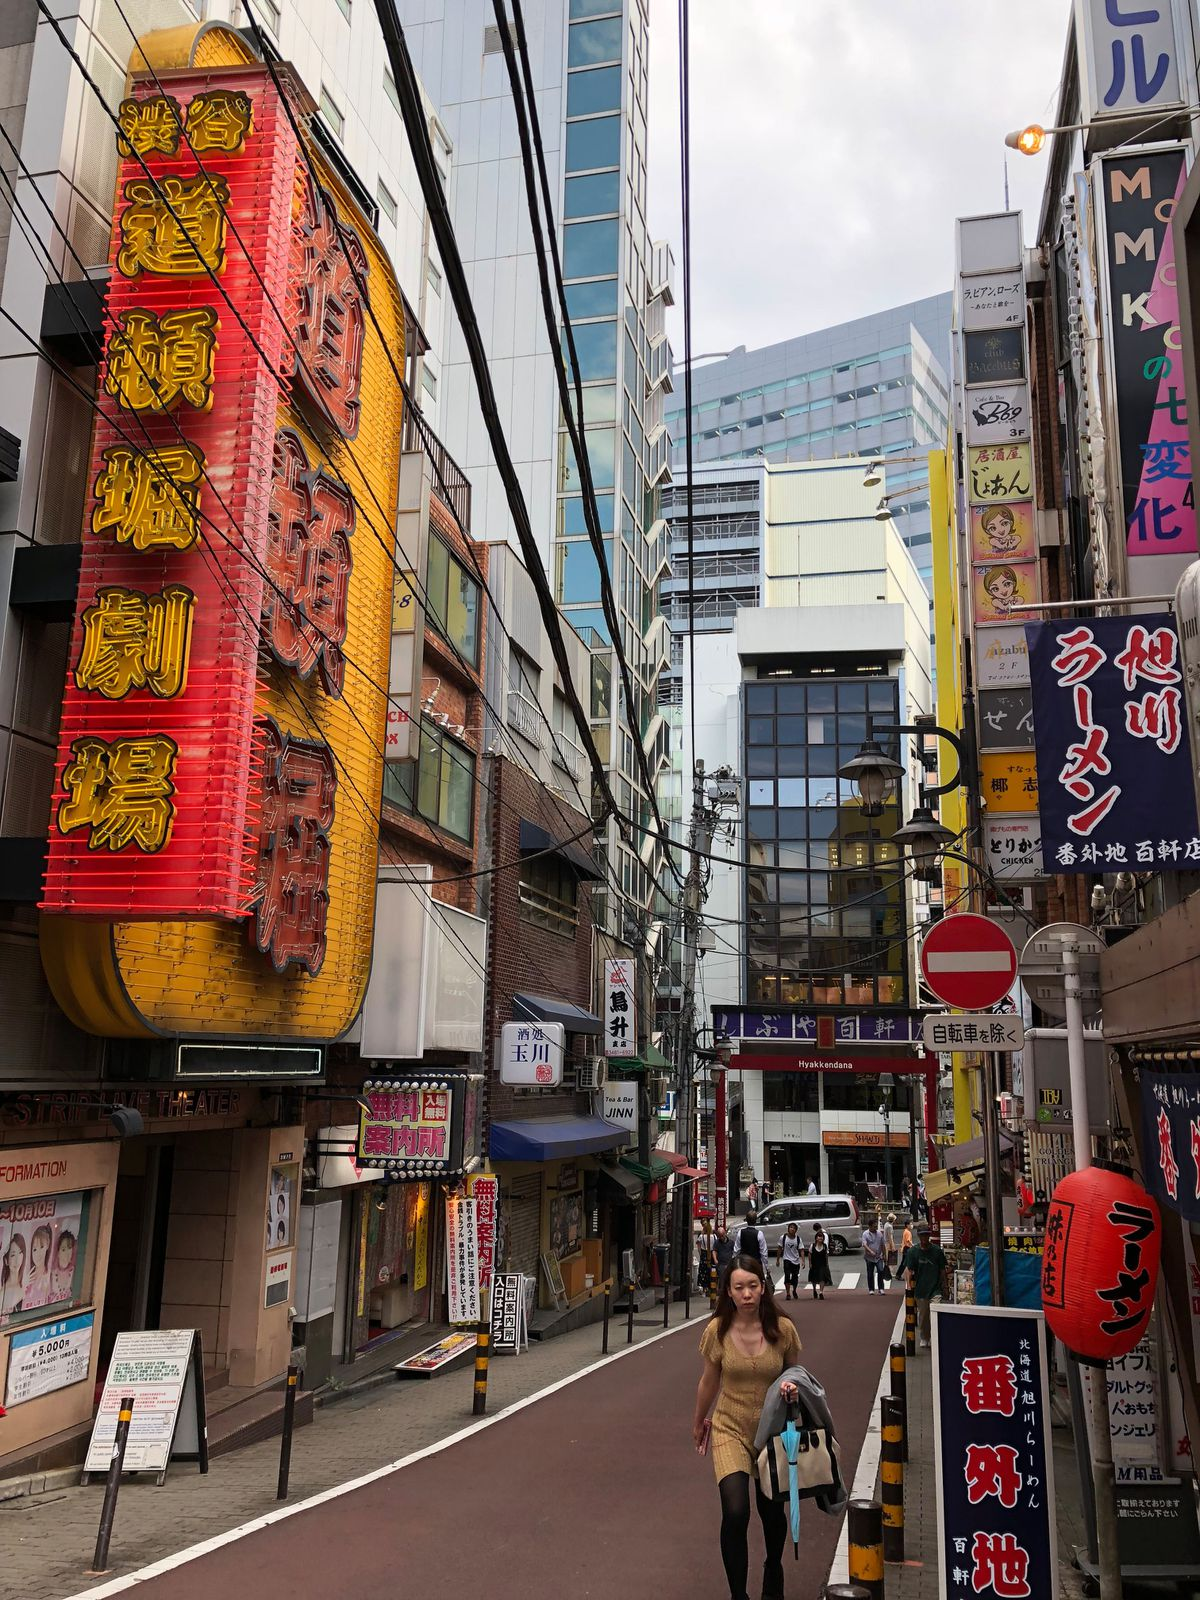 Japan's signage is beautiful in such a chaotic way. (Shot with Moment 18mm wide-angle lens).